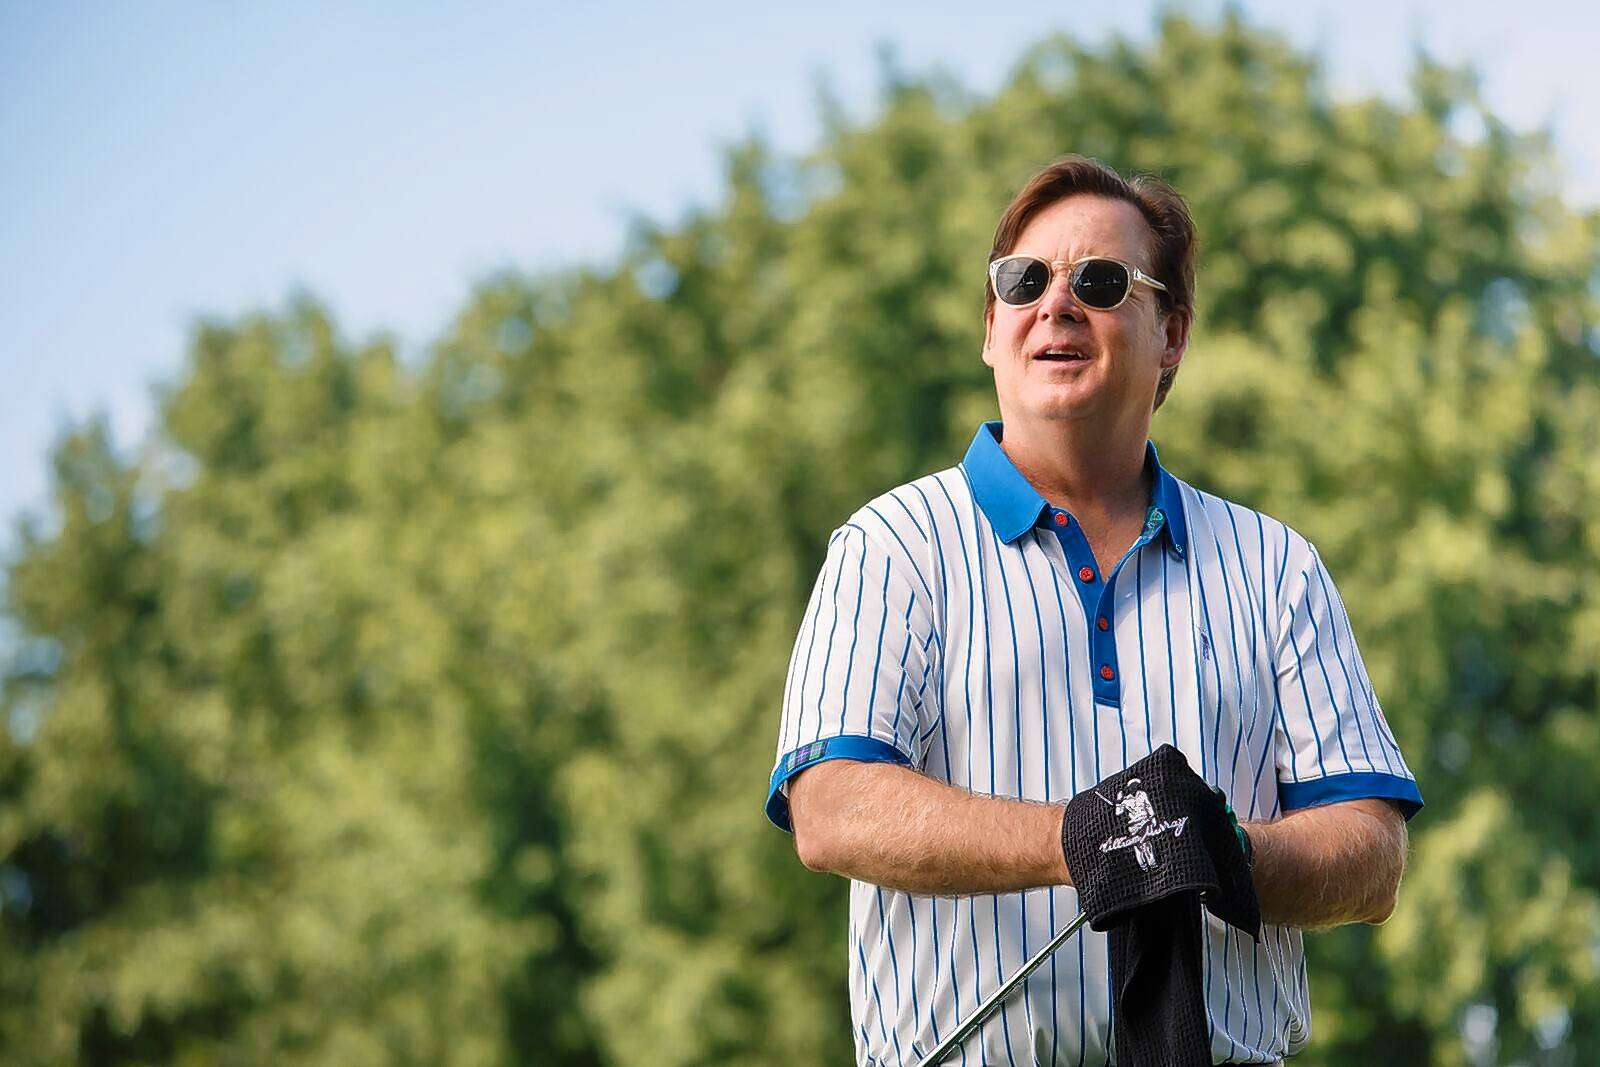 While he doesn't ooze the coolness of his big brother, Bill Murray, Joel Murray says he stays cool in this shirt from the William Murray Golf clothing line run by the six Murray brothers. This pinstriped shirt reflects Chicago Cubs passion.